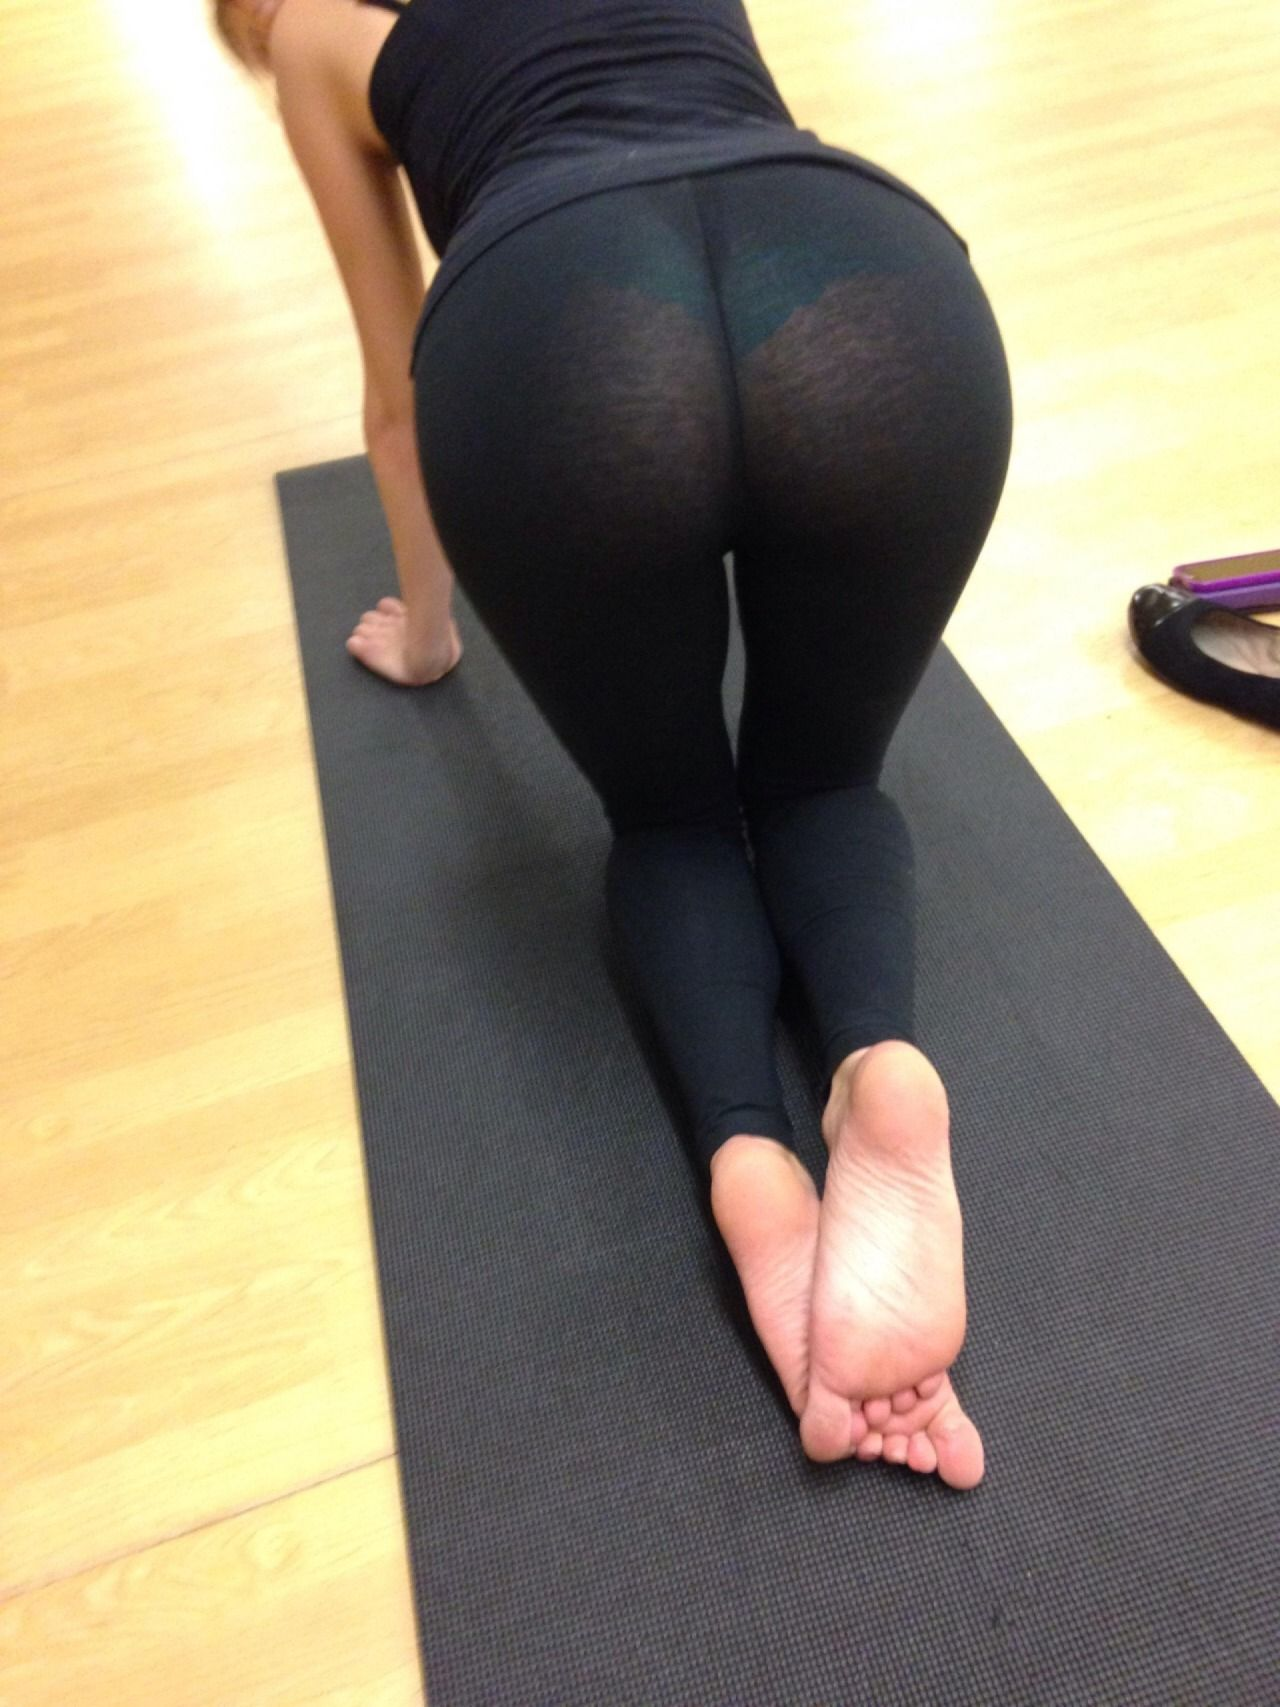 Sexy feet and yoga pants, sara jay sexpro